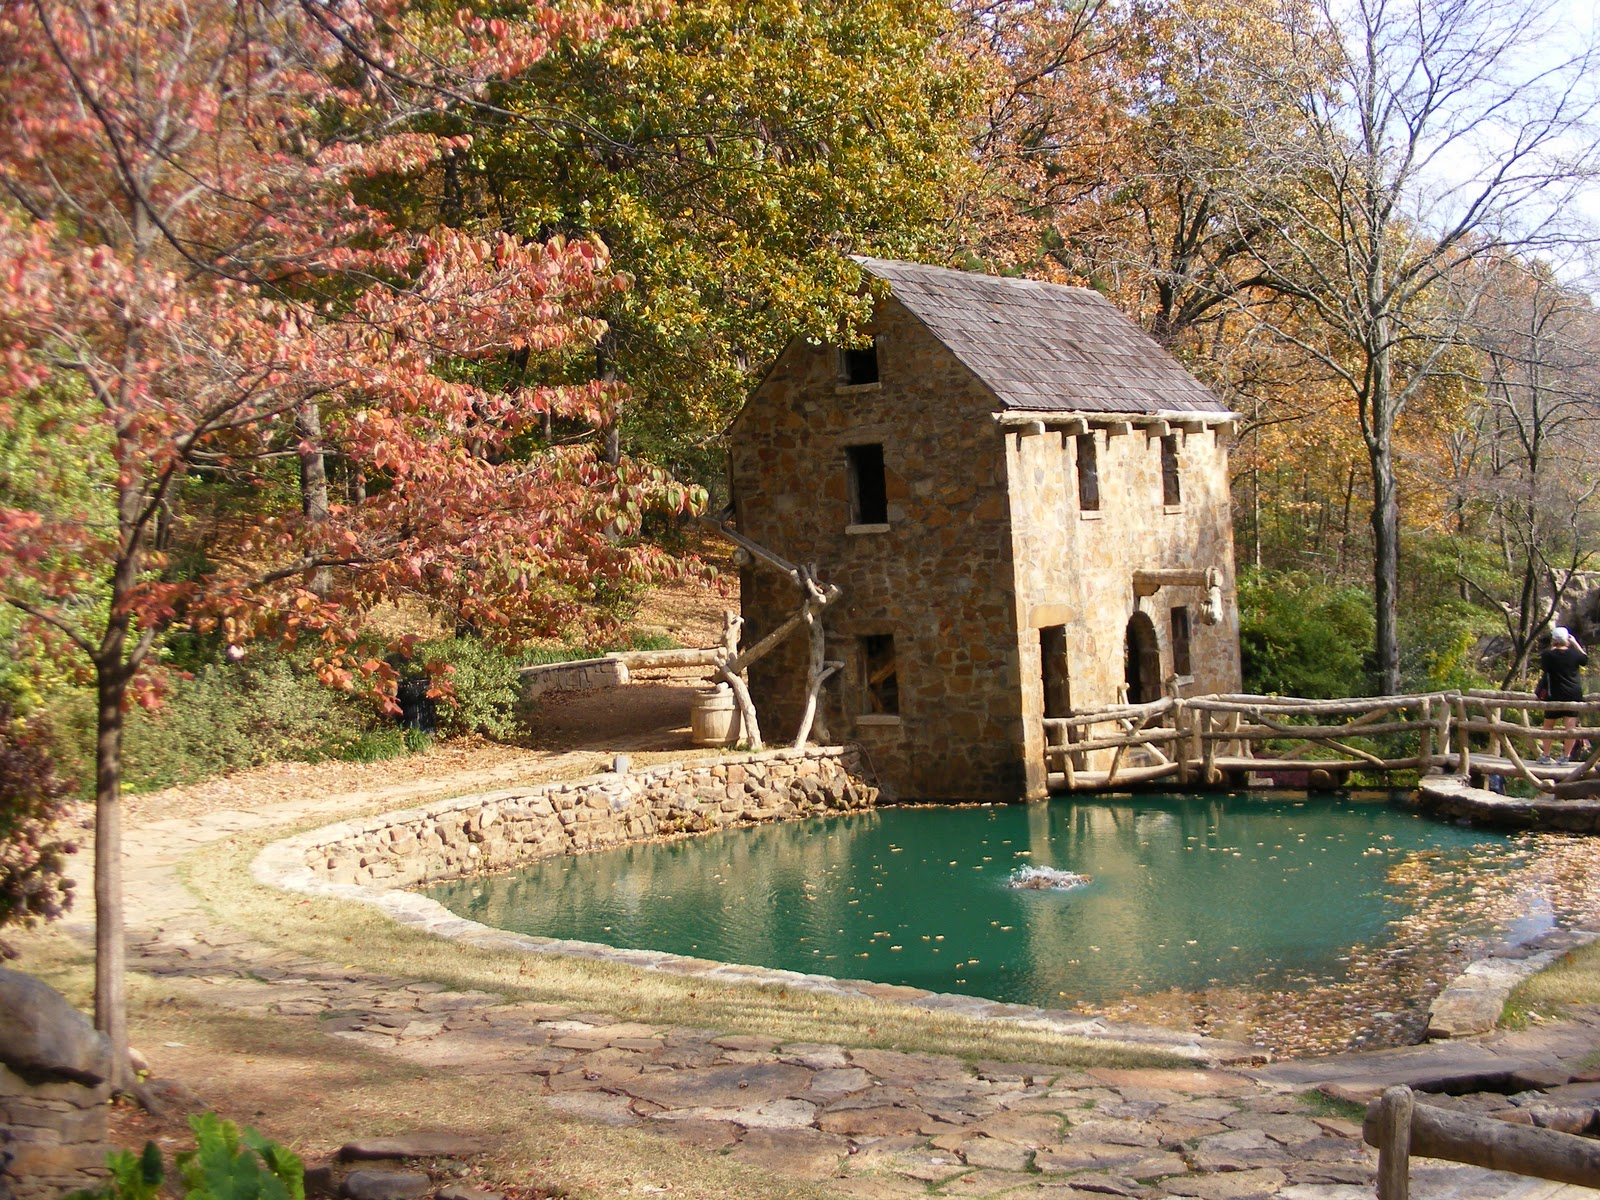 NapkinDreams: Old Mill of Little Rock